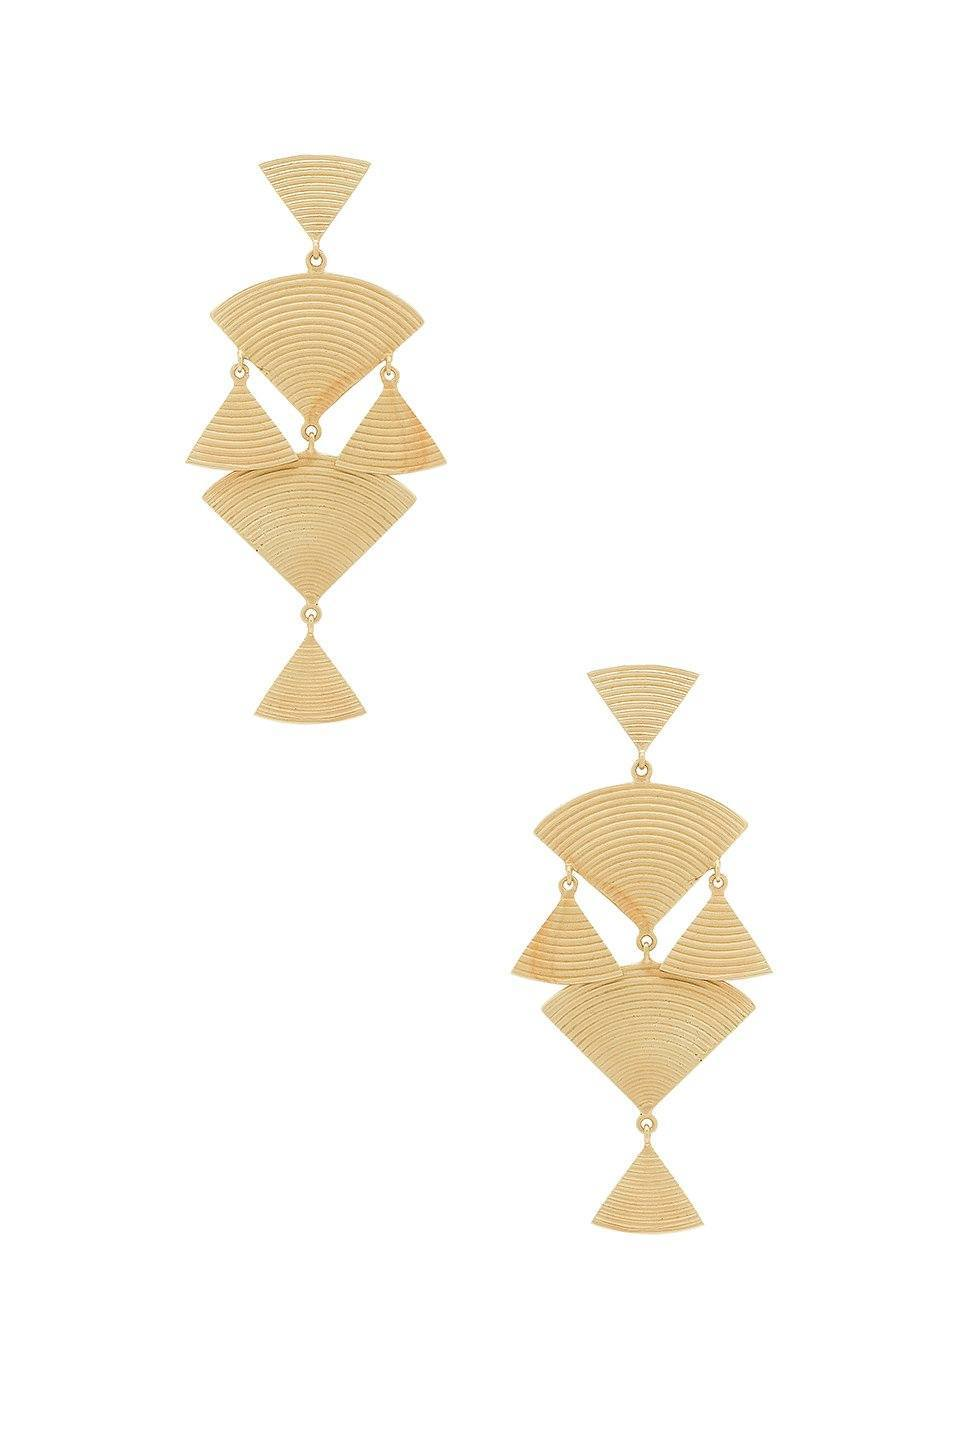 Wren Earrings in Gold